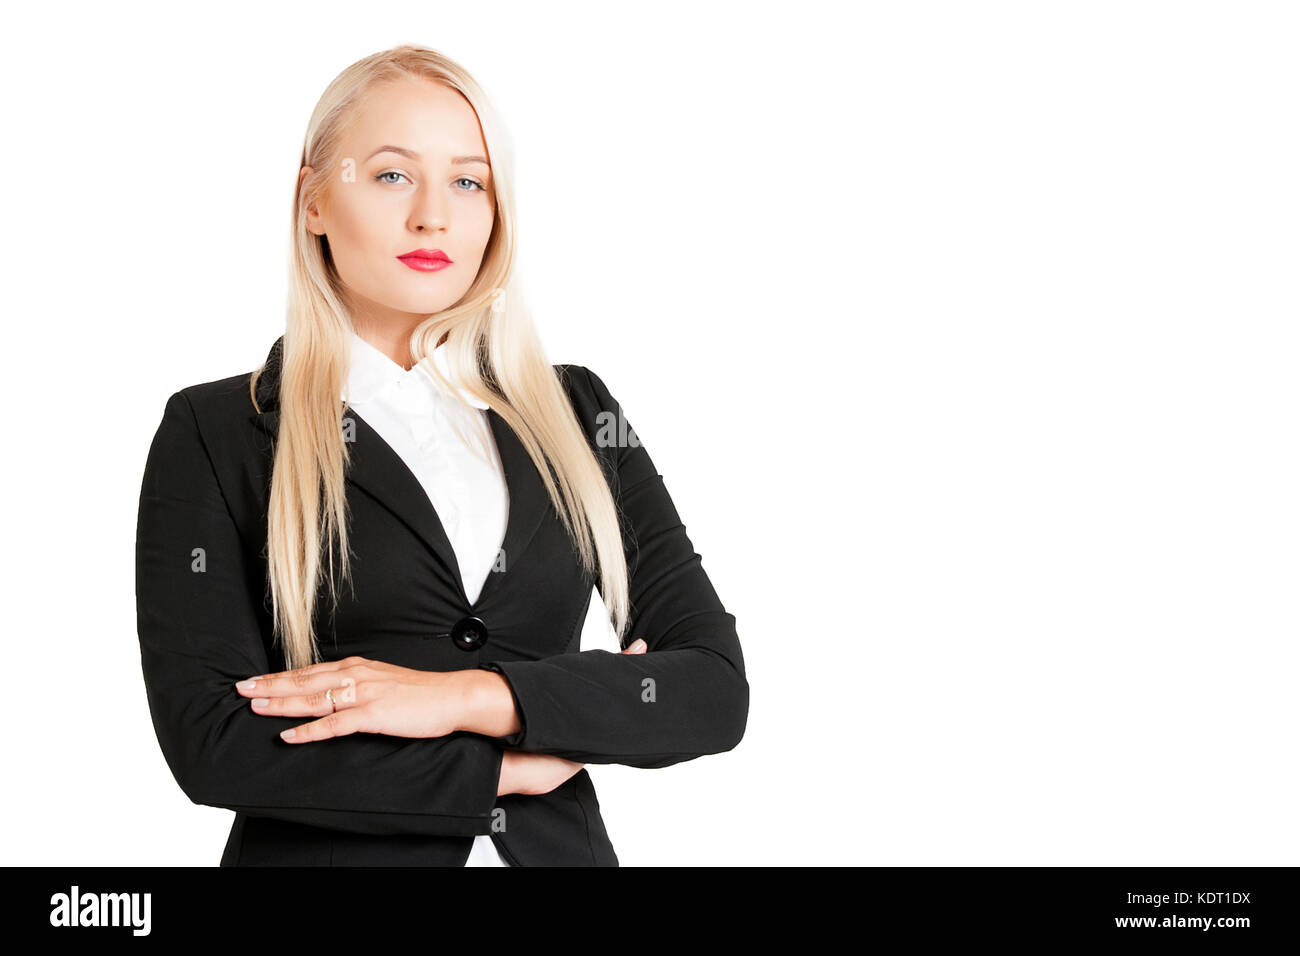 Half-length portrait of beautiful smiling blonde  standing aside cross-armed looking at us. Isolated on white background - Stock Image